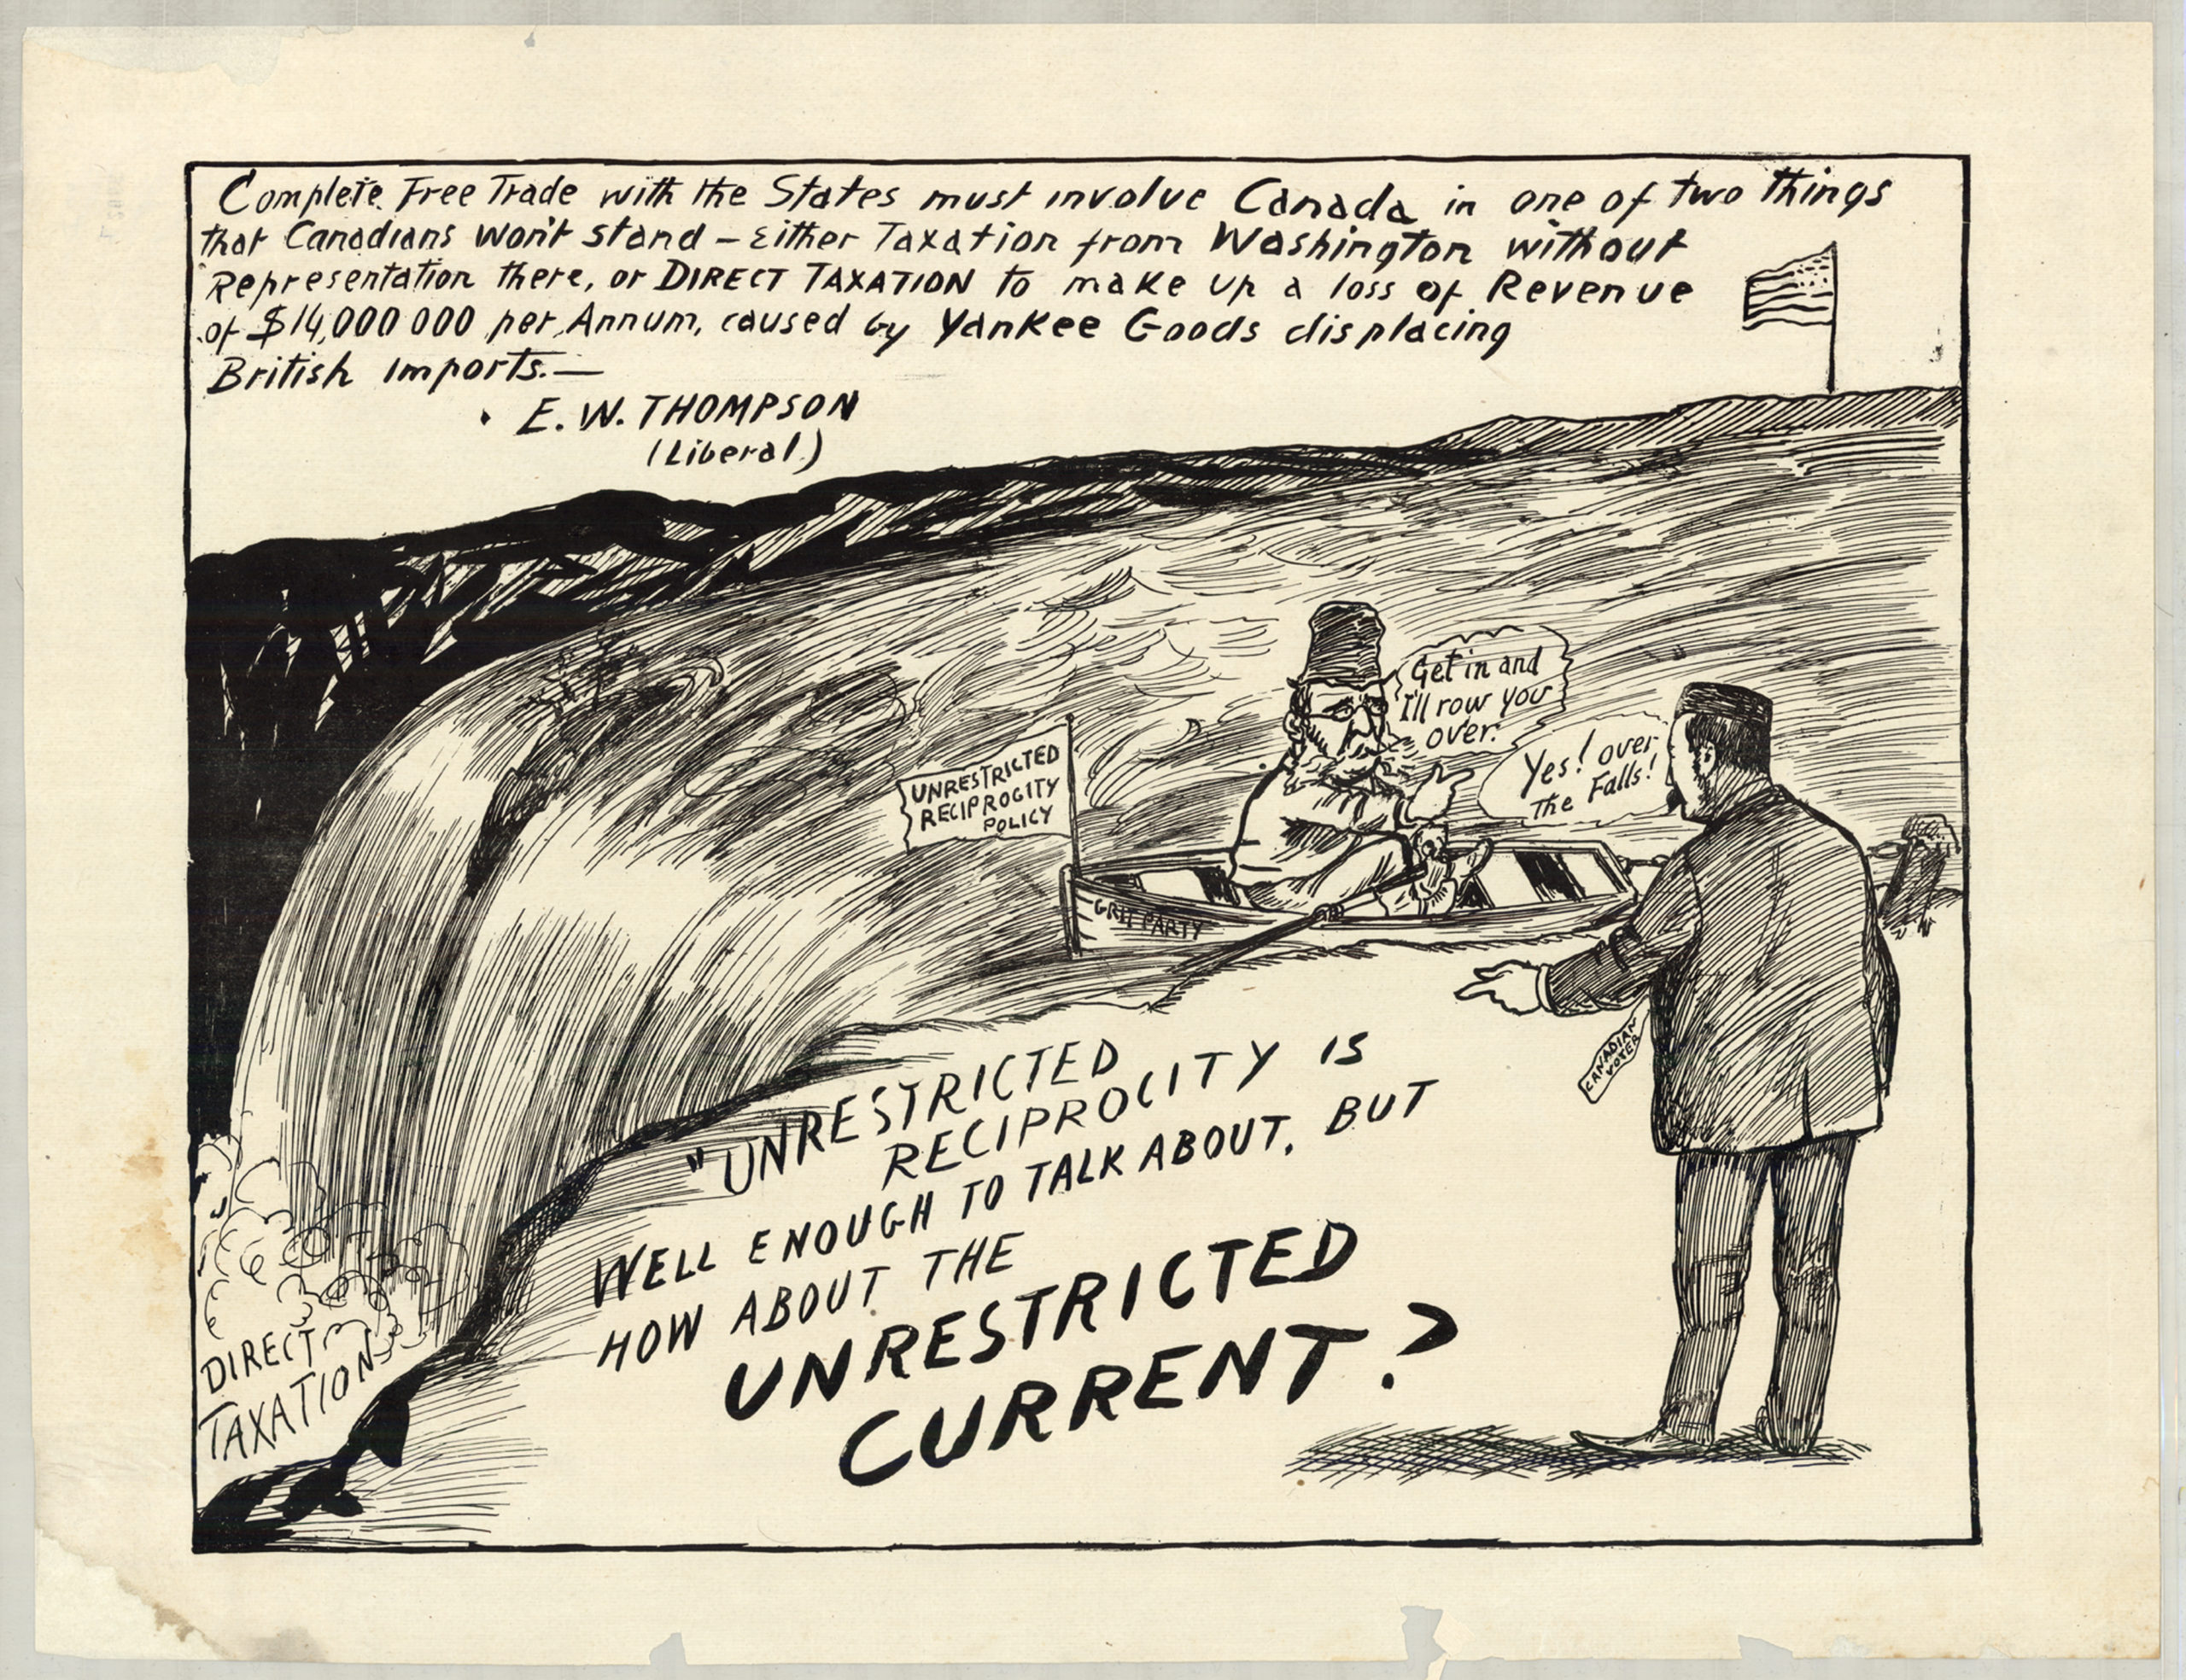 """Cartoon of a man in a boat on top of Niagara Falls, attempting to lure another man into the boat In this cartoon, on the far side of Niagara Falls flies an American flag. At the base of the Falls, amidst mist and spray are the words """"DIRECT TAXATION."""" On the near side, a man with glasses, a tall hat, and a beard sits in a small rowboat and beckons to a man in a suit with the tag """"CANADIAN VOTER"""" on the shore. The name of the boat reads """"GRIT POLICY"""" and a flag at the front of the boat reads """"UNRESTRICTED RECIPROCITY POLICY."""" The man in the boat says """"Get in and I'll row you over!"""""""